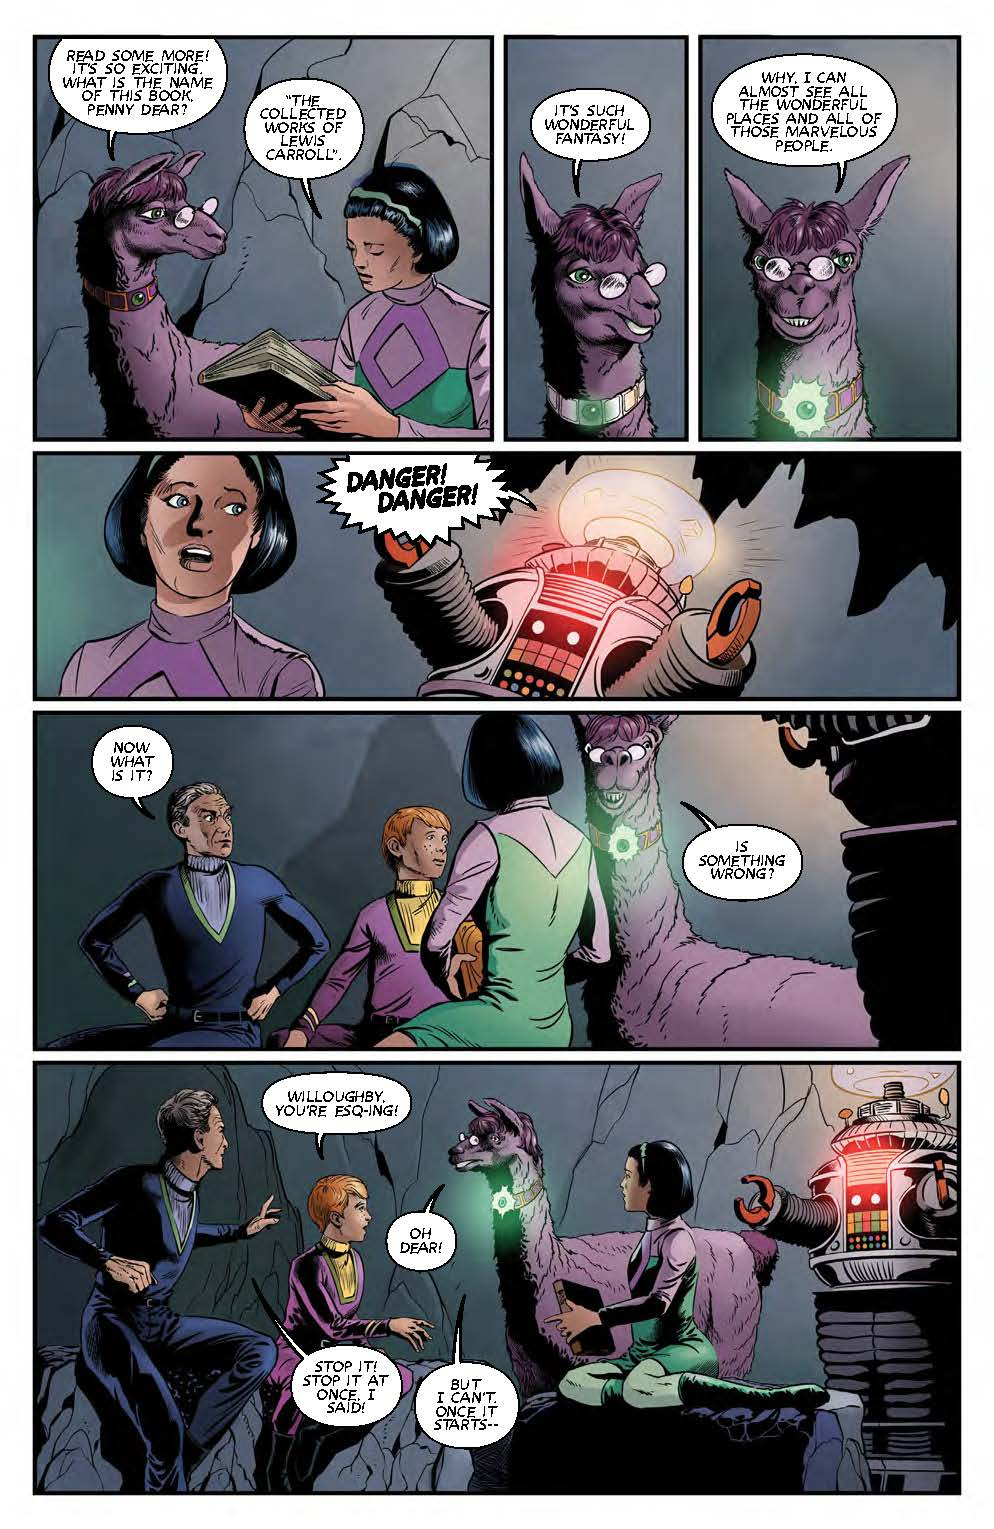 lost in space comic page 3